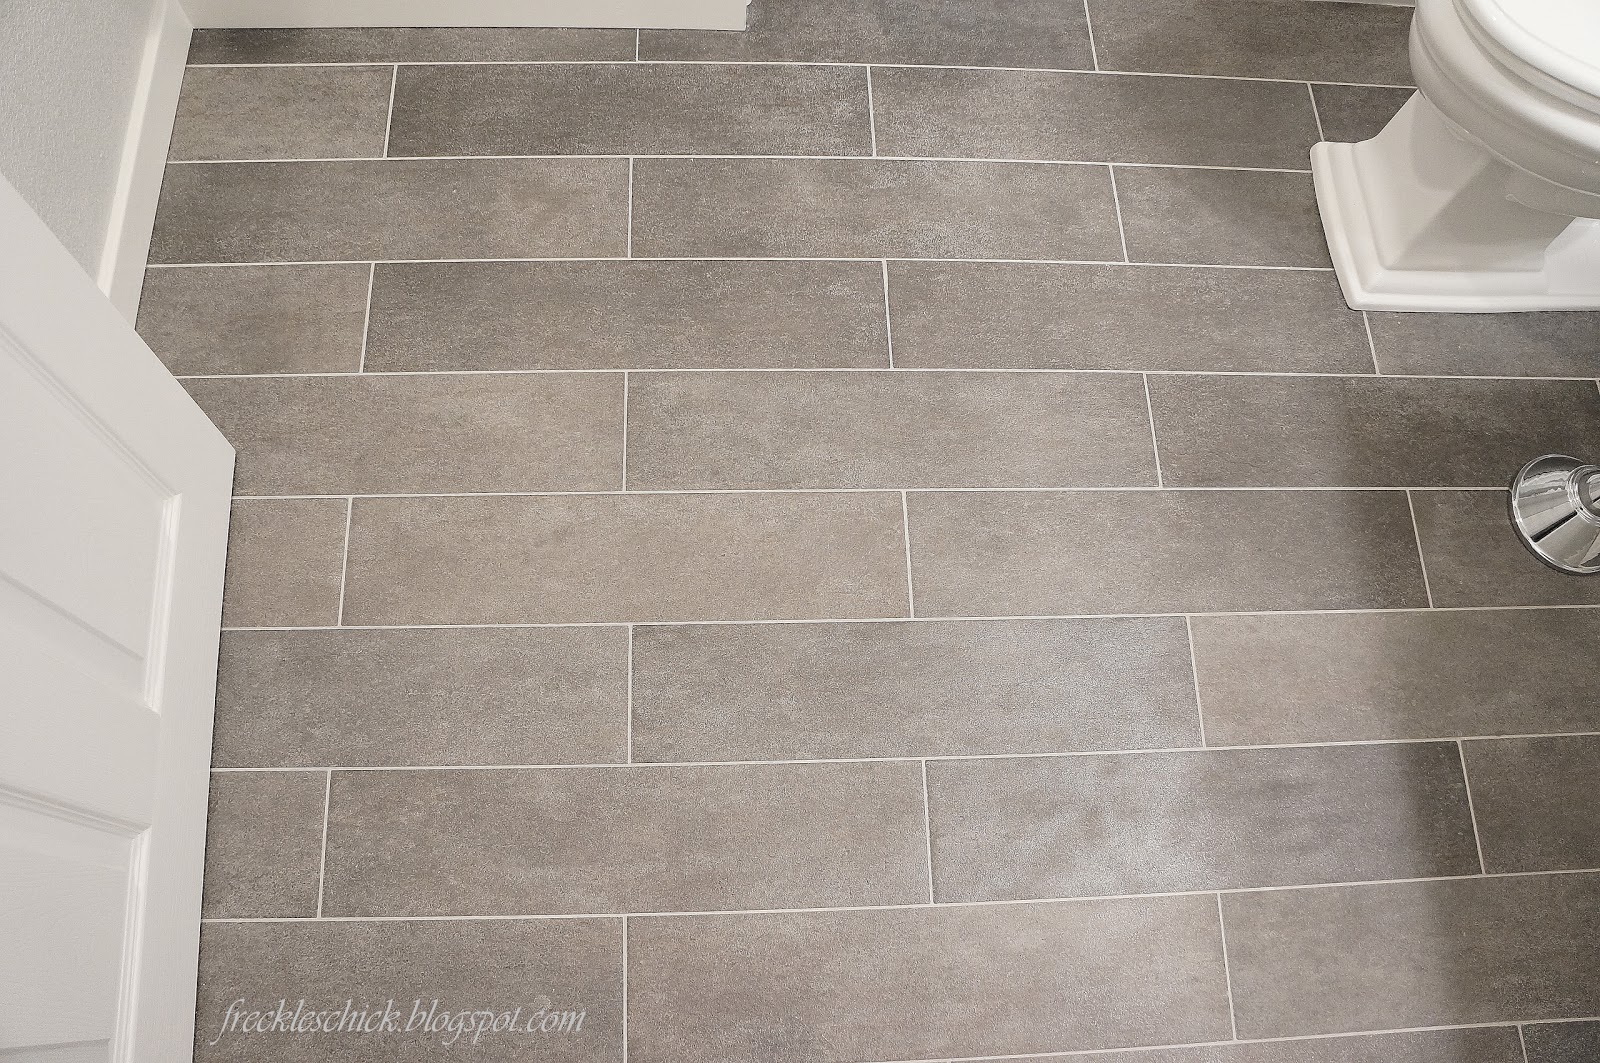 plank bathroom floor tiles - Images Of Bathroom Floors